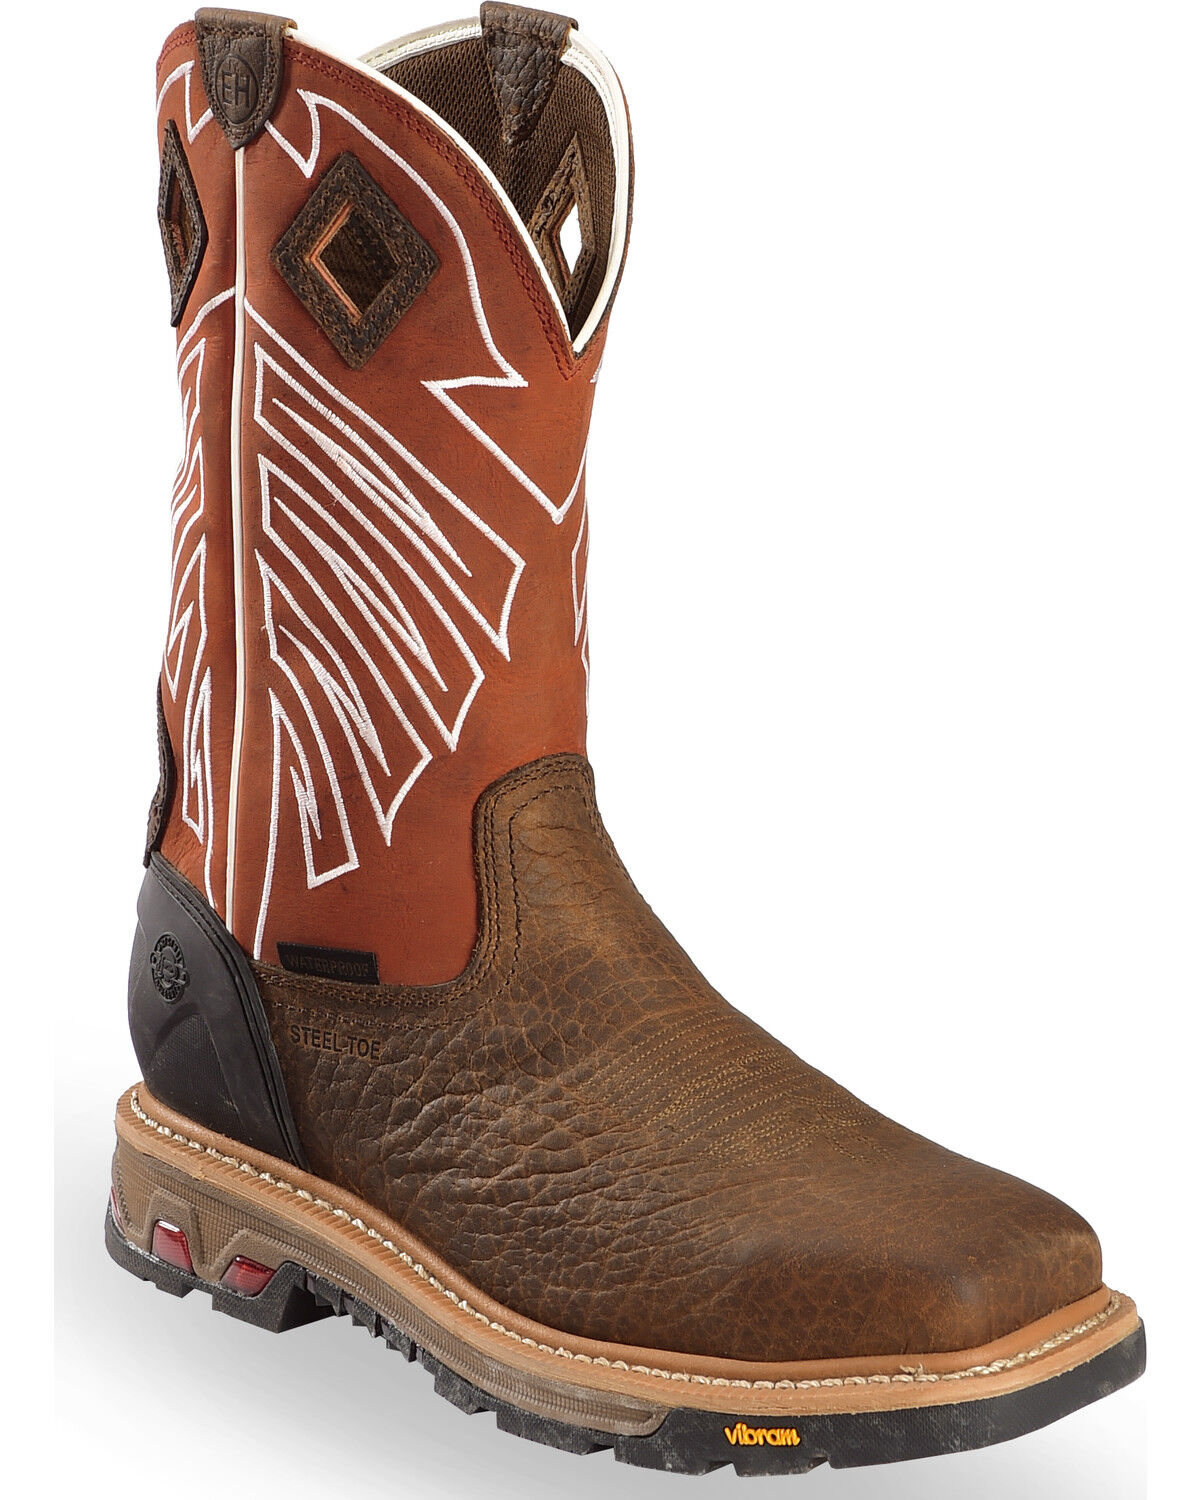 Justin Work Boots - Boot Barn